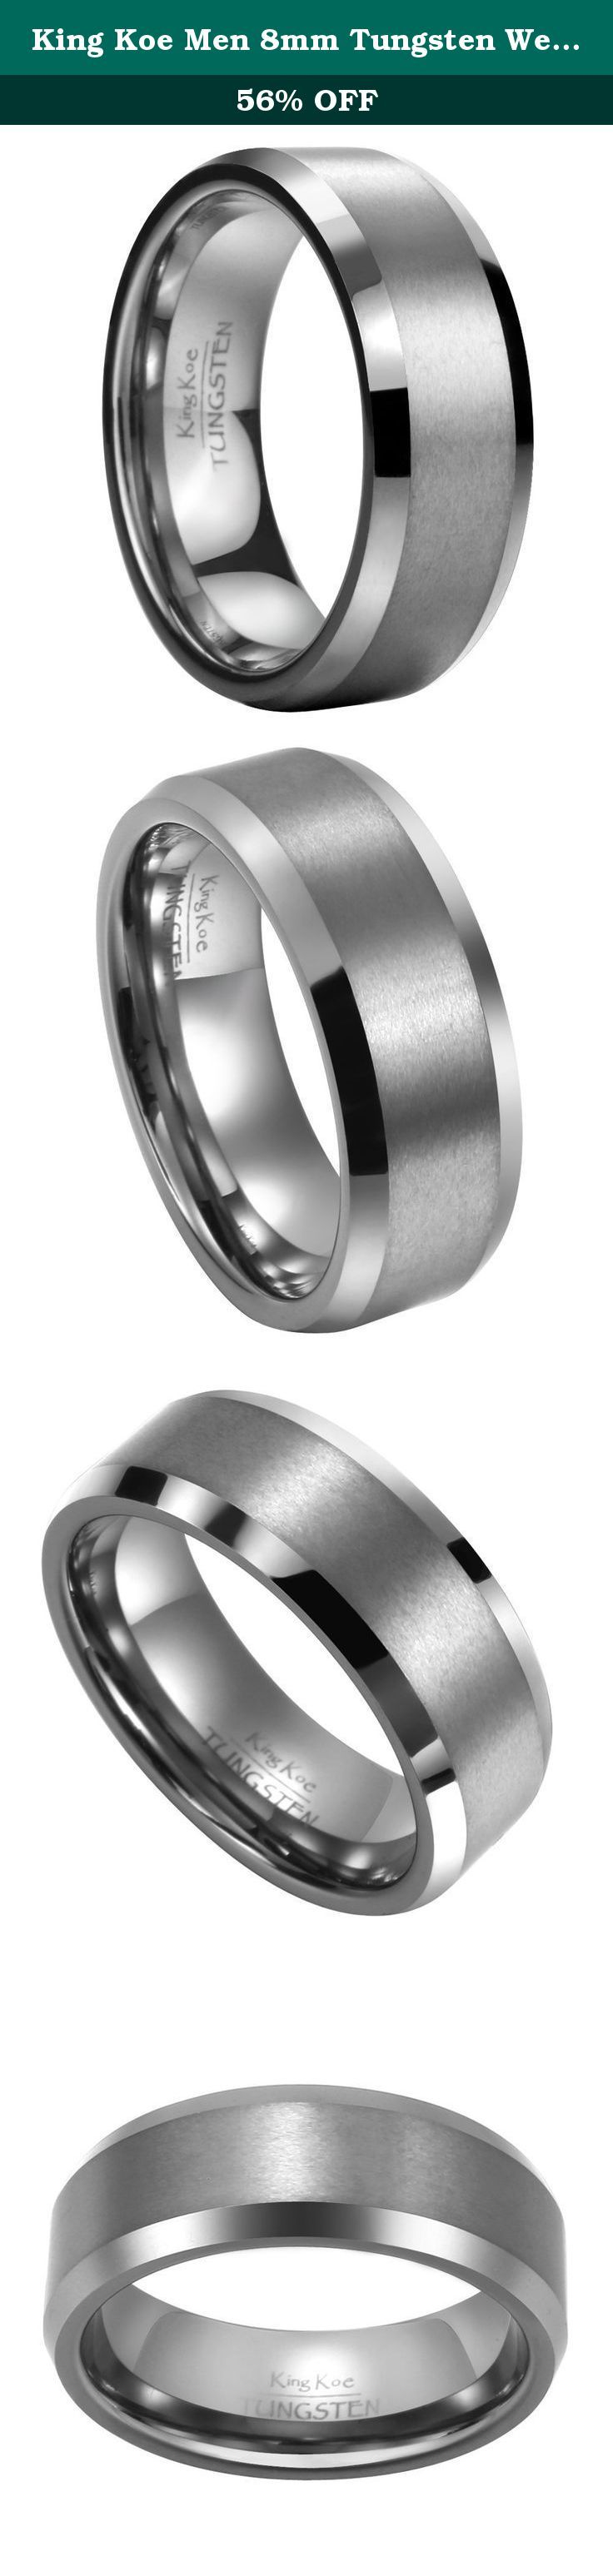 King Koe Men 8mm Tungsten Wedding Band Ring Comfort Matte Finish Life Time Warranty Size 10.5. We are committed to King Koe's credit worthiness and hope all the rings can keep a good condition, so that we provide LIFE TIME WARRANTY! It might be a little bit inaccurate measuring by you. If you are not sure about the correct finger size, we would like to suggest you go to two or three local jewelry stores asking for professional help, that would be better. If you have any question, please…